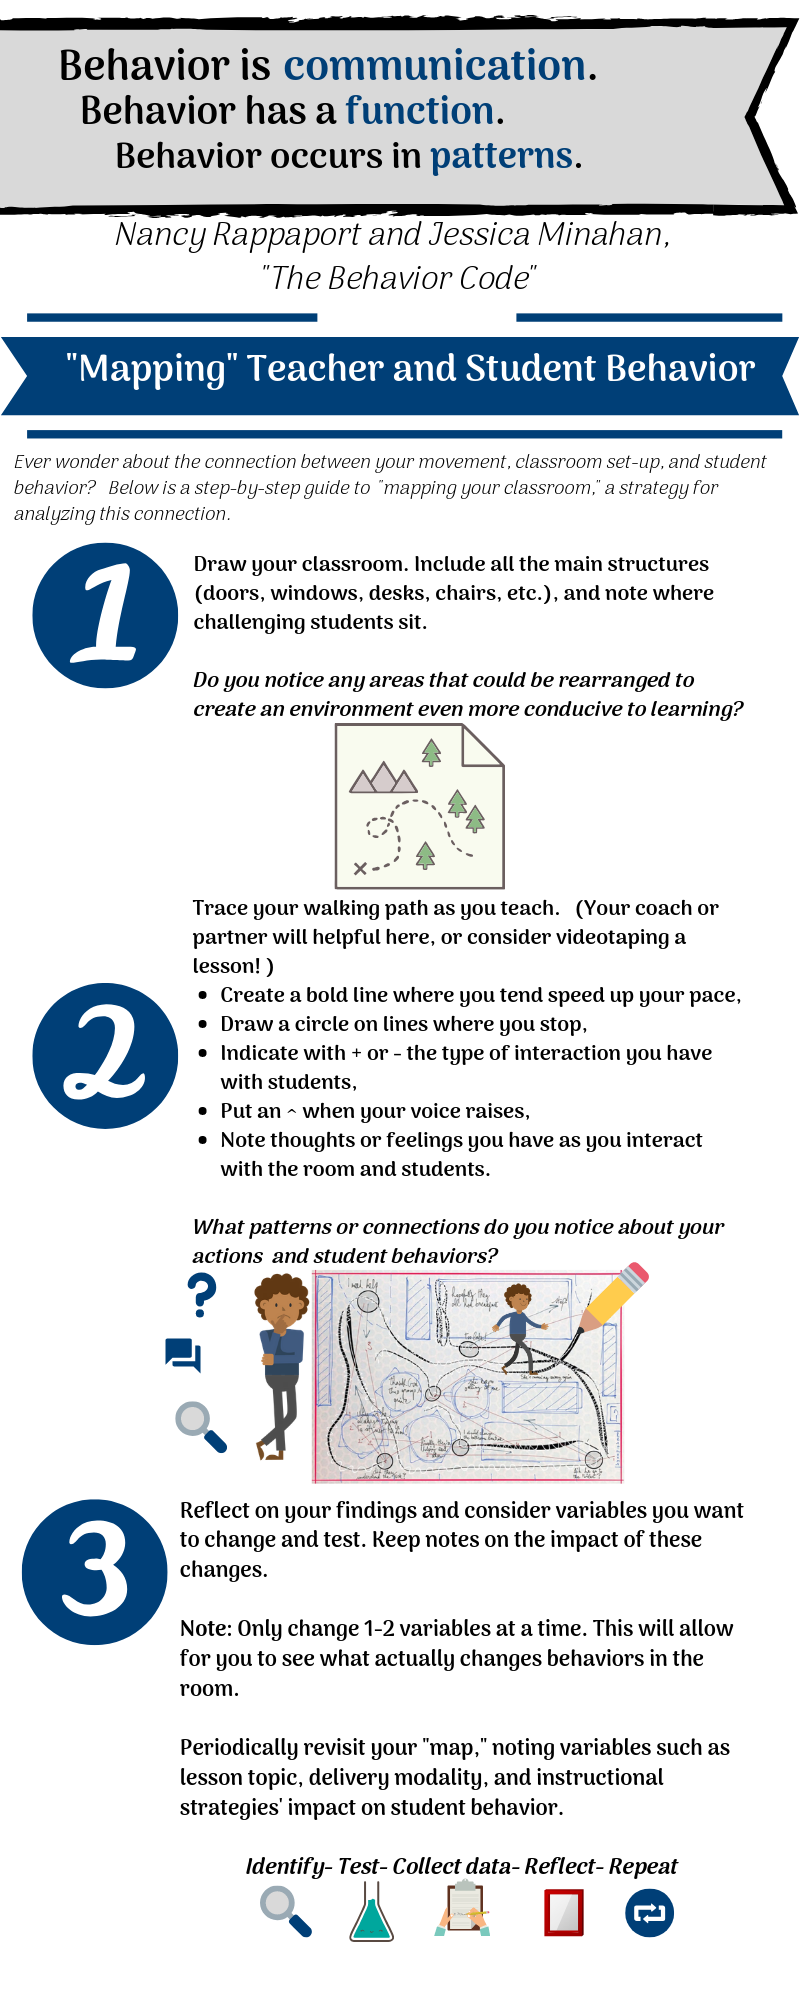 Mapping Your Classroom